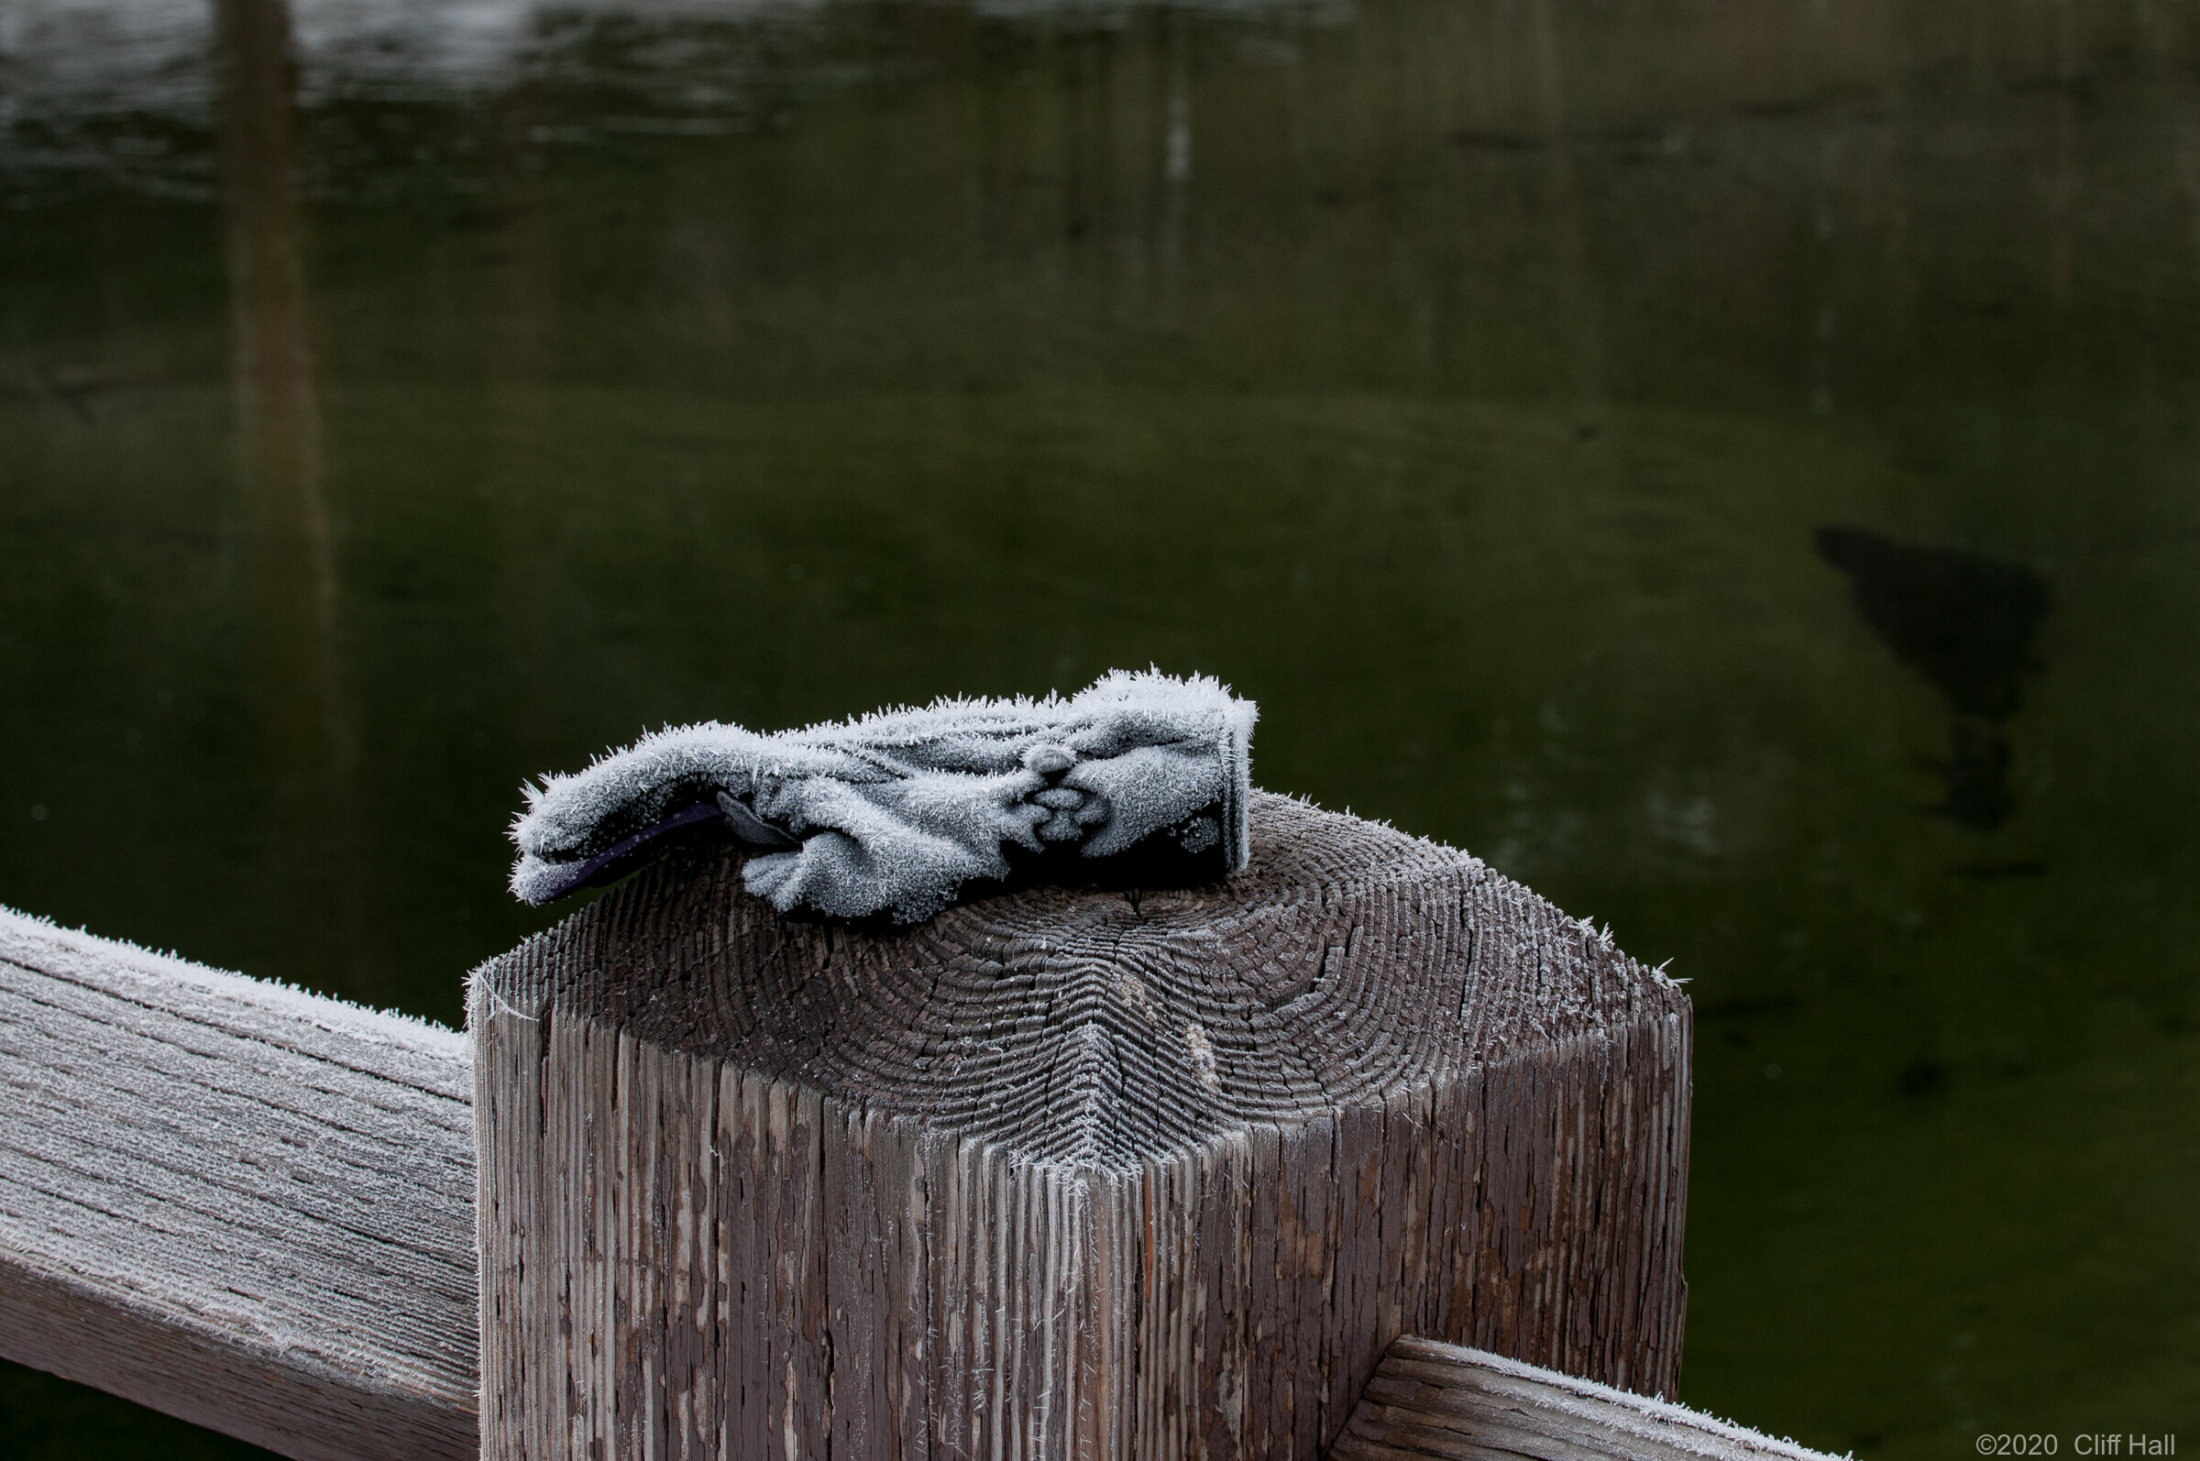 Frosted glove on the bridge